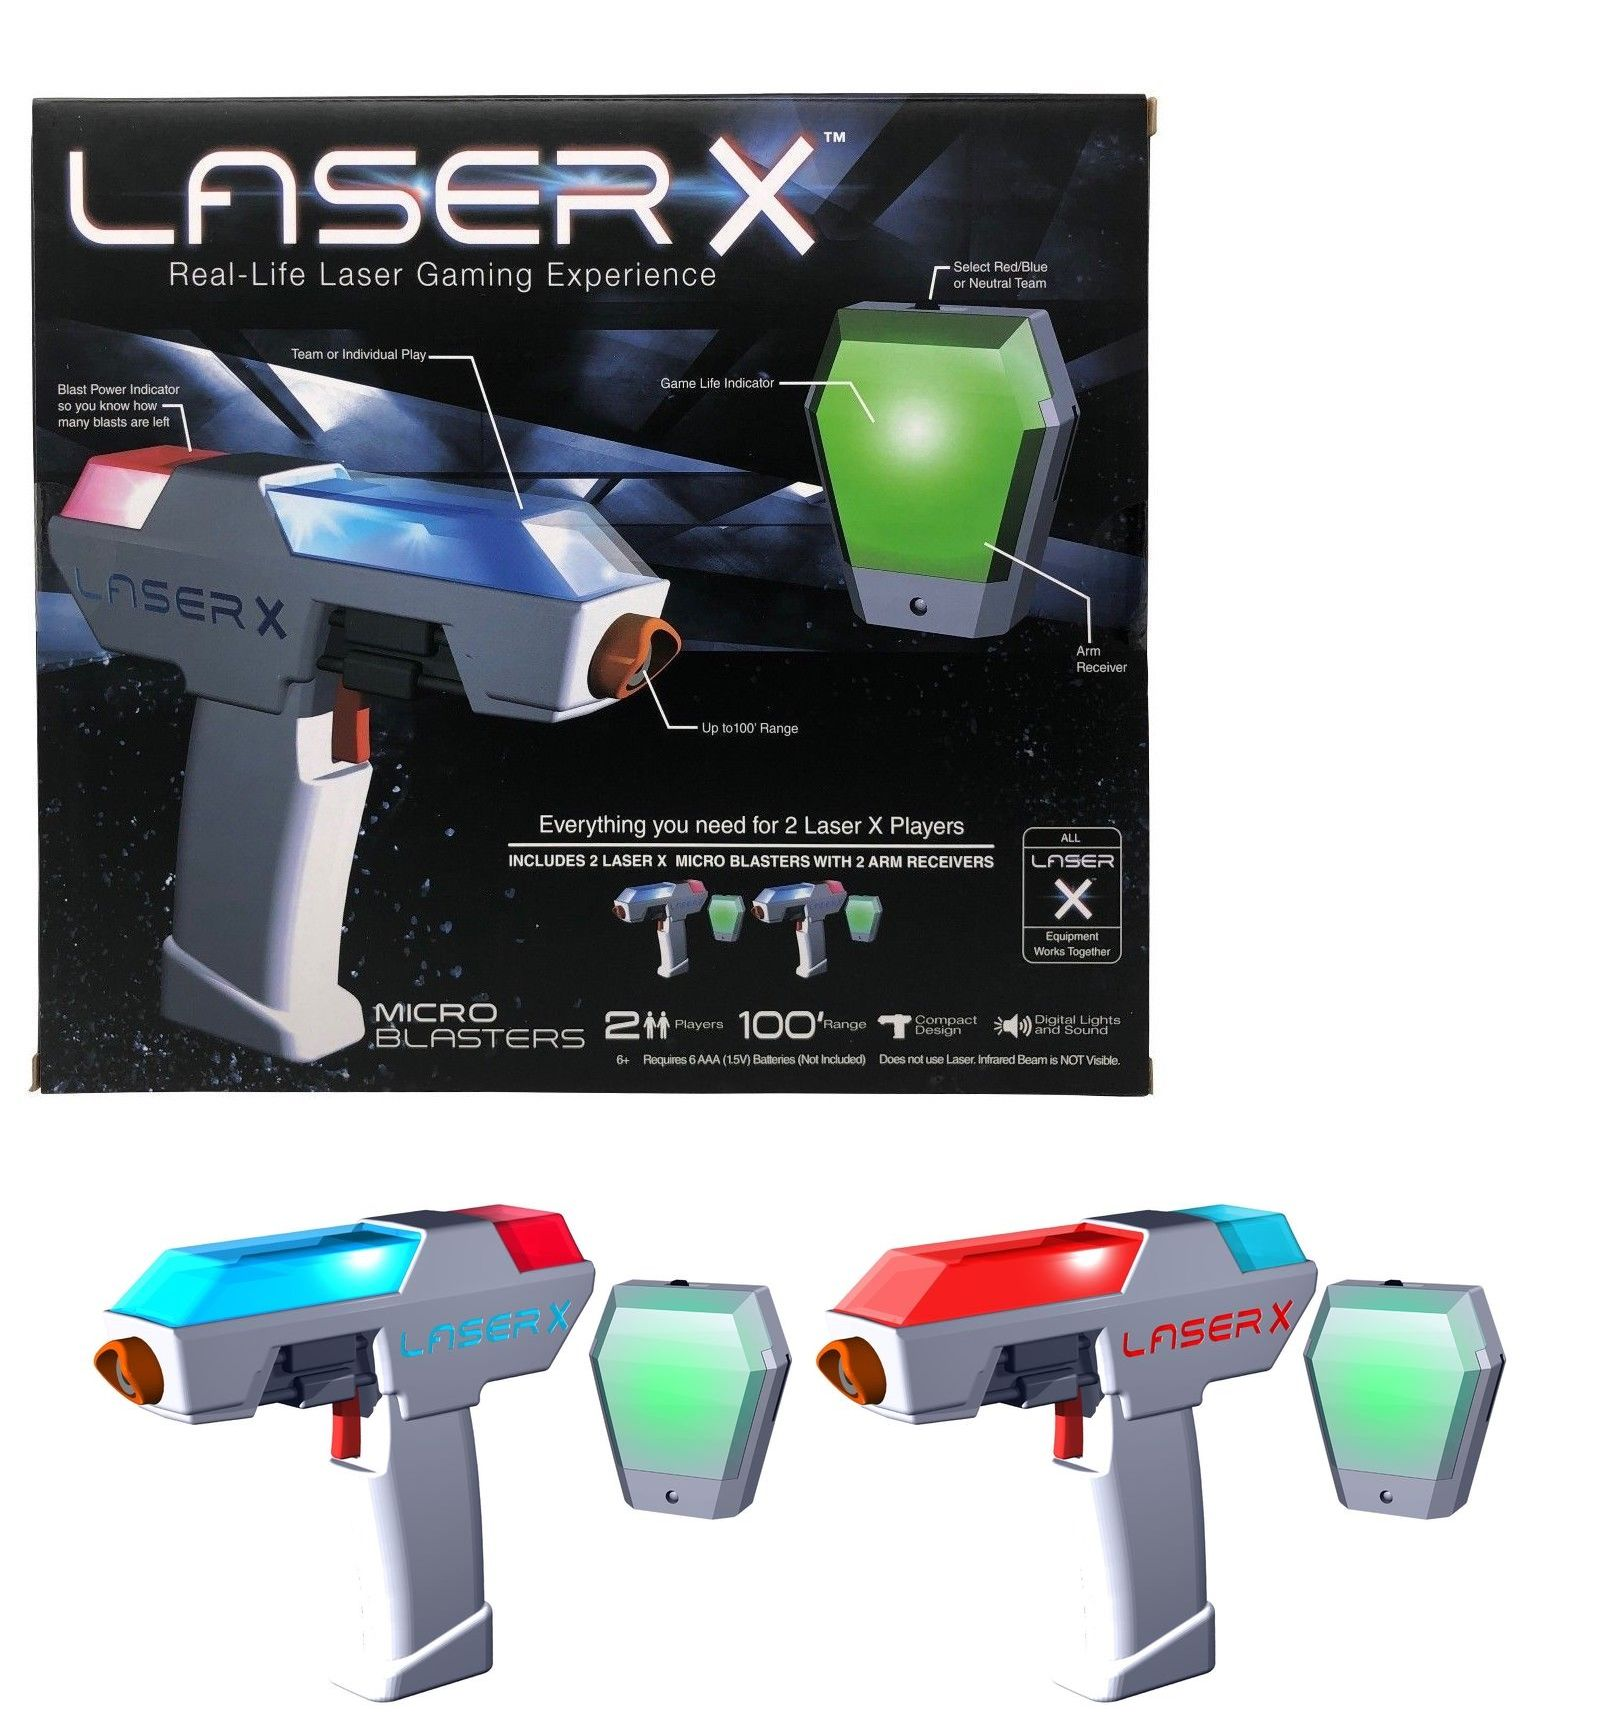 Laser Tag 168245 New Laser X Real Life Laser Gaming Experience Micro Blasters Set Of 2 Players Buy It Now Only 23 99 On Ebay L Real Life Laser Tag Life